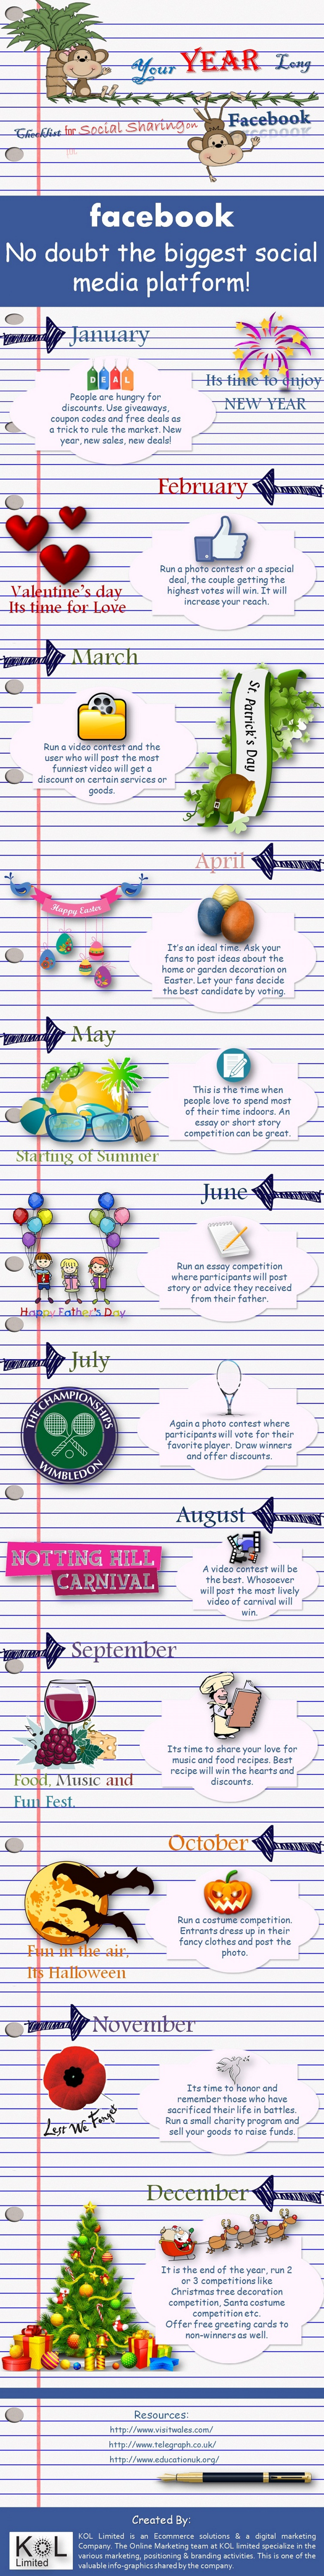 Your Year Long Checklist for Social Sharing on Facebook Infographic